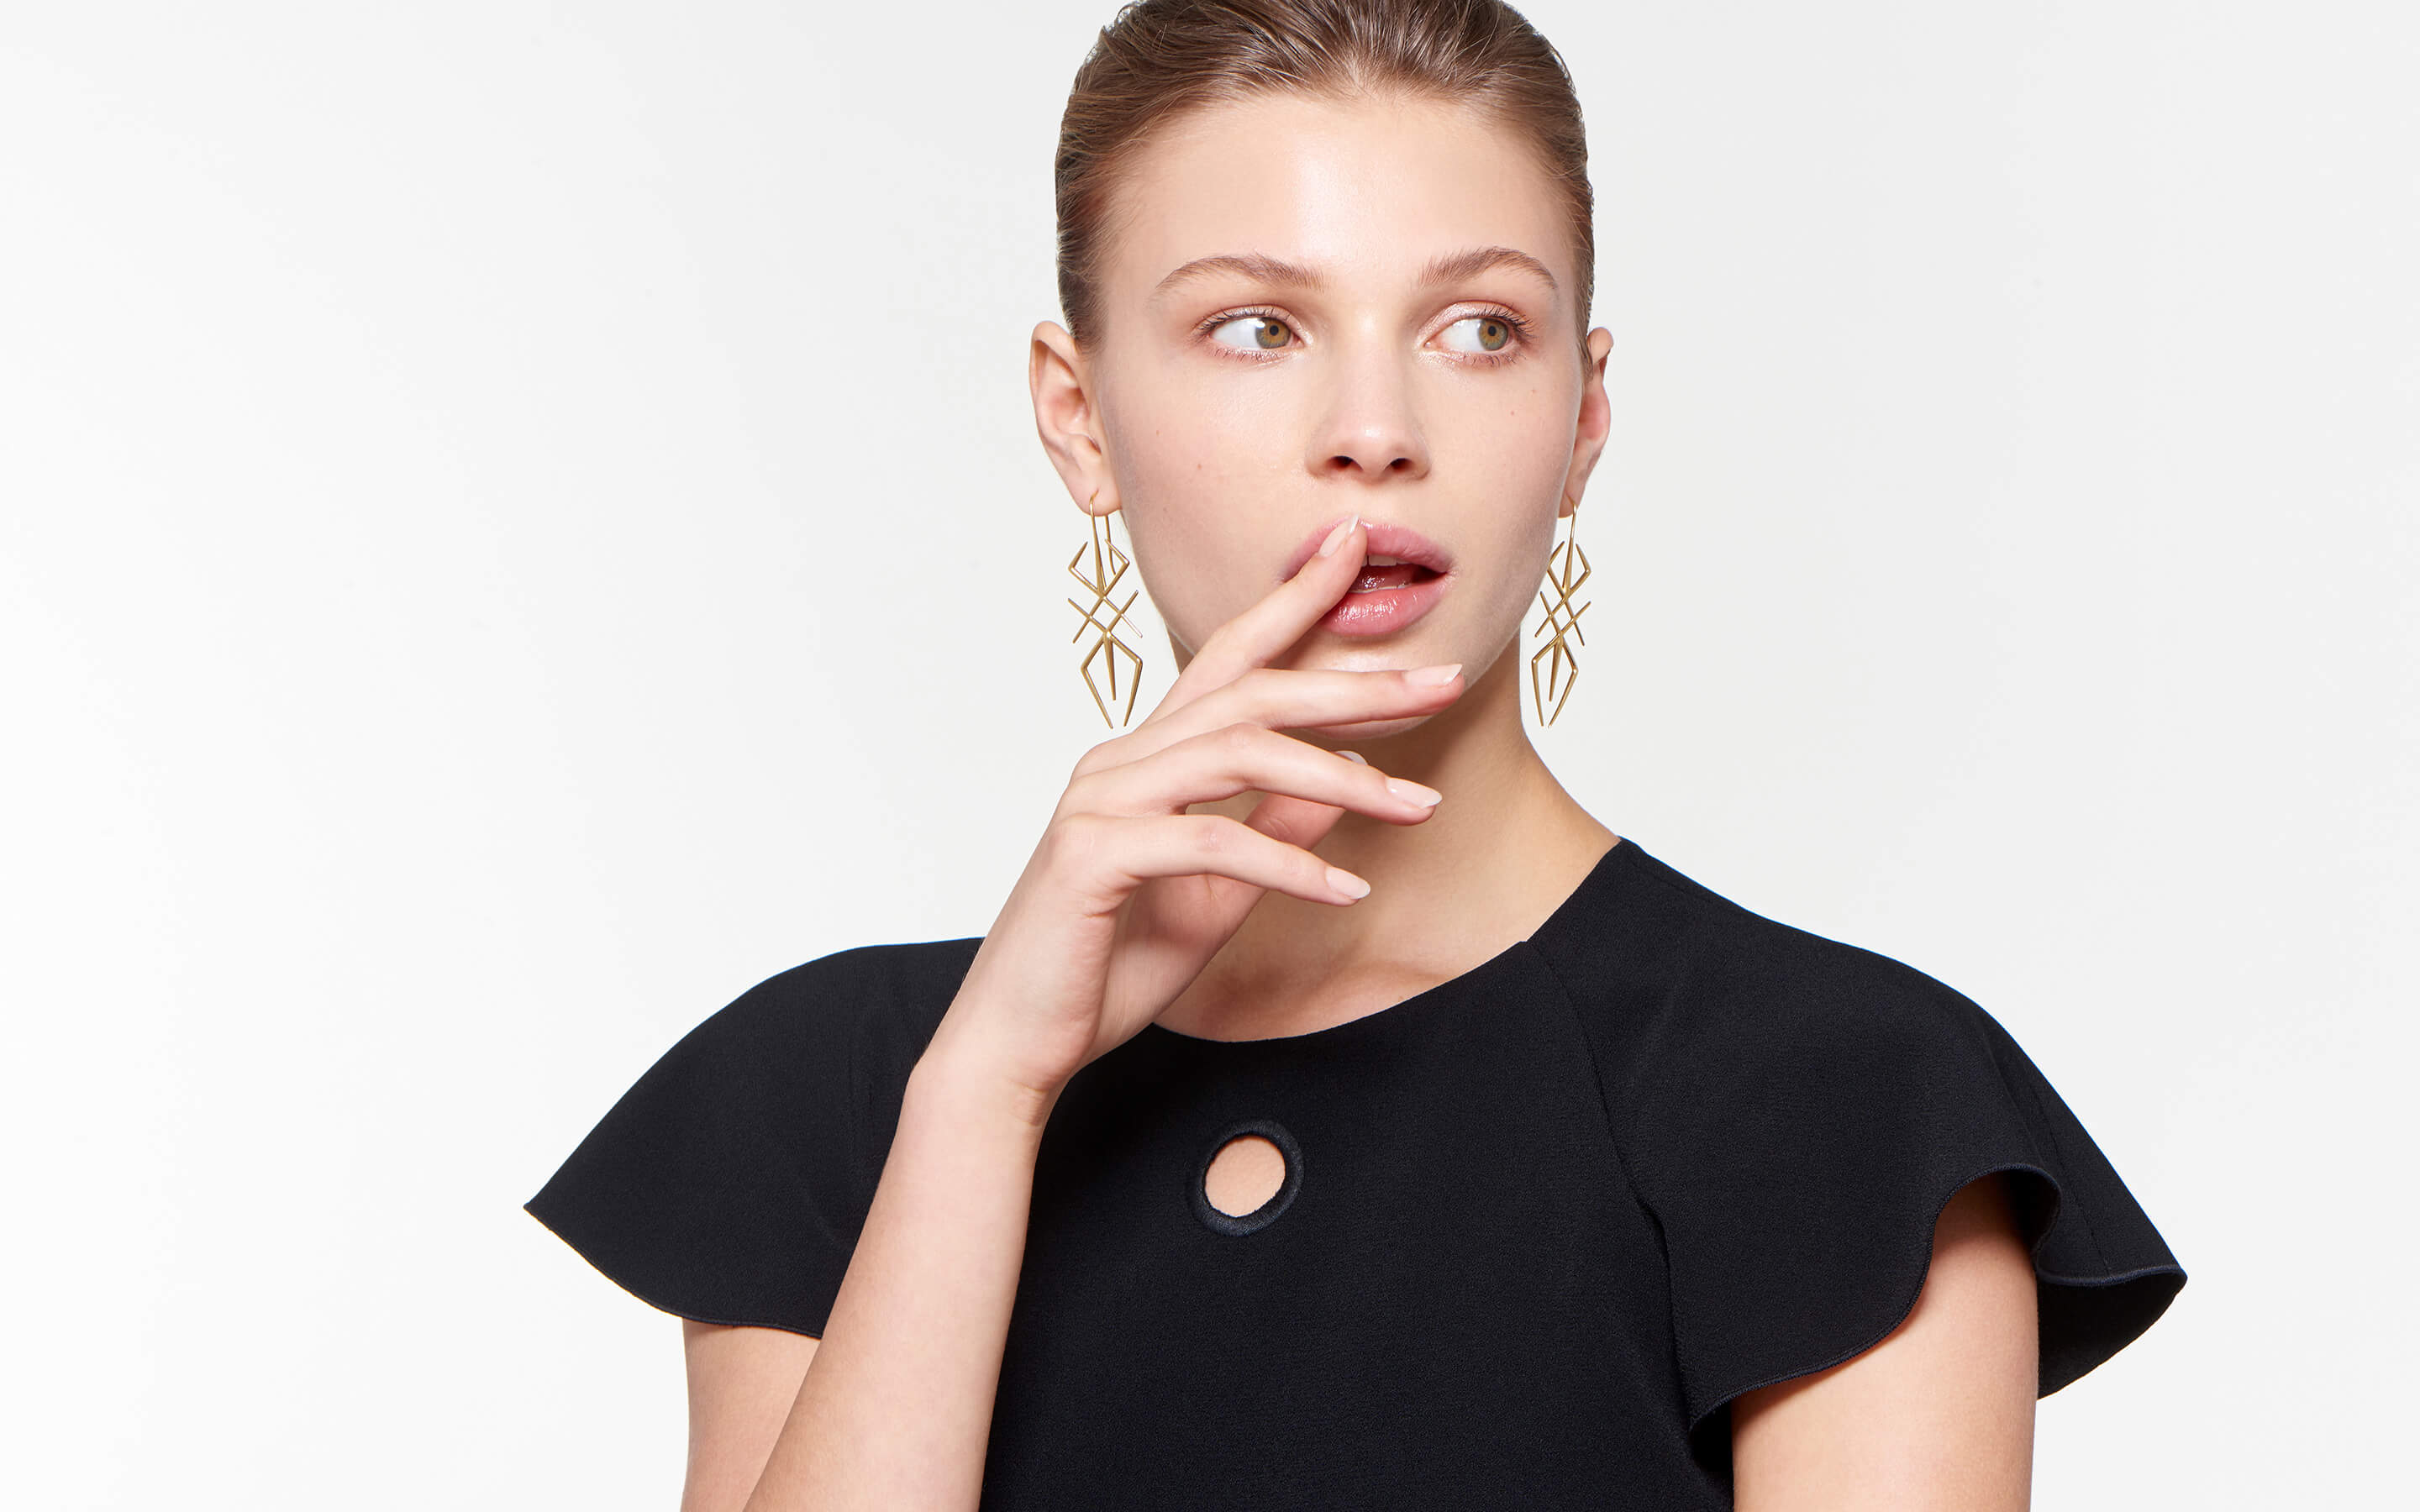 lovely model staring enigmatically wearing gleaming 22 karat gold earrings formed into artistic spiders